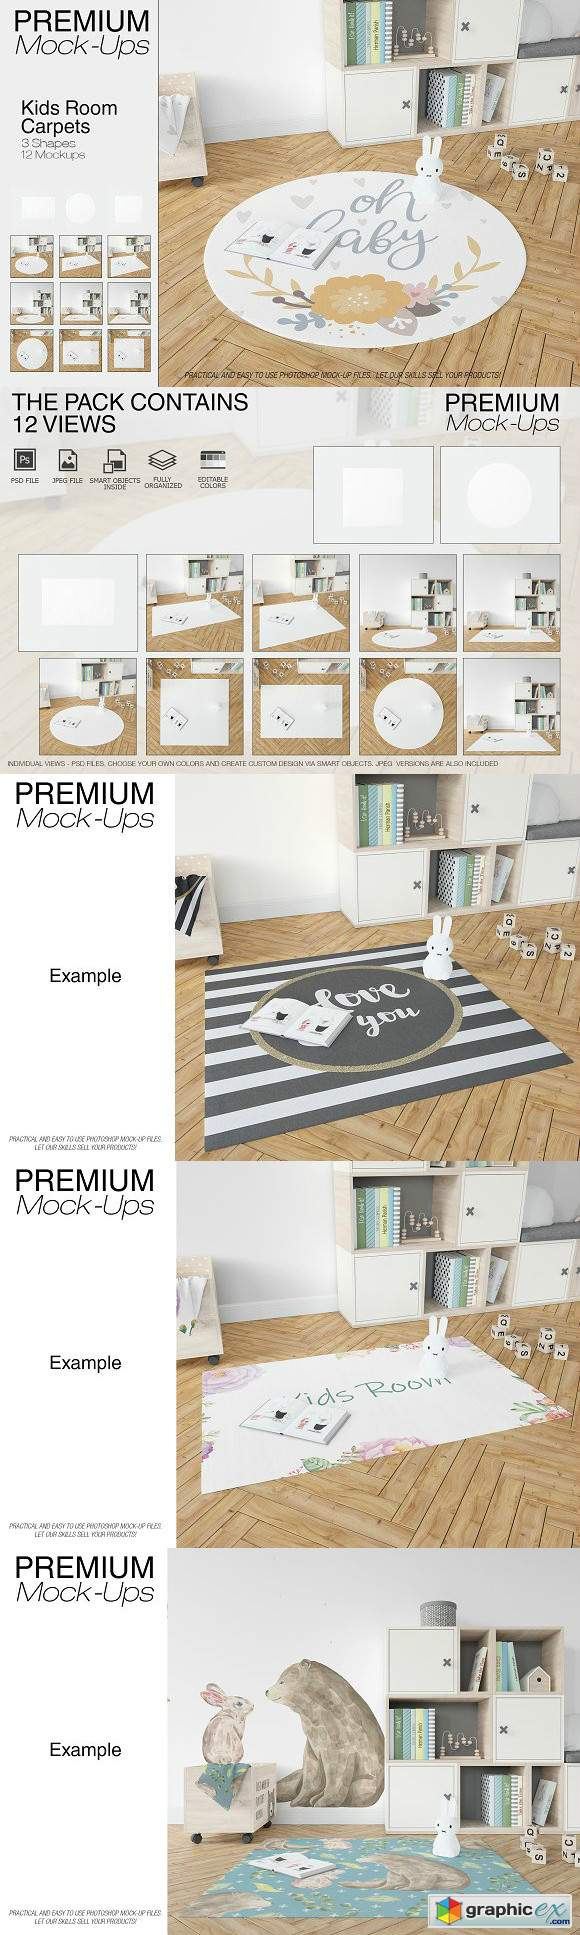 3 Types of Carpets in Kids Room